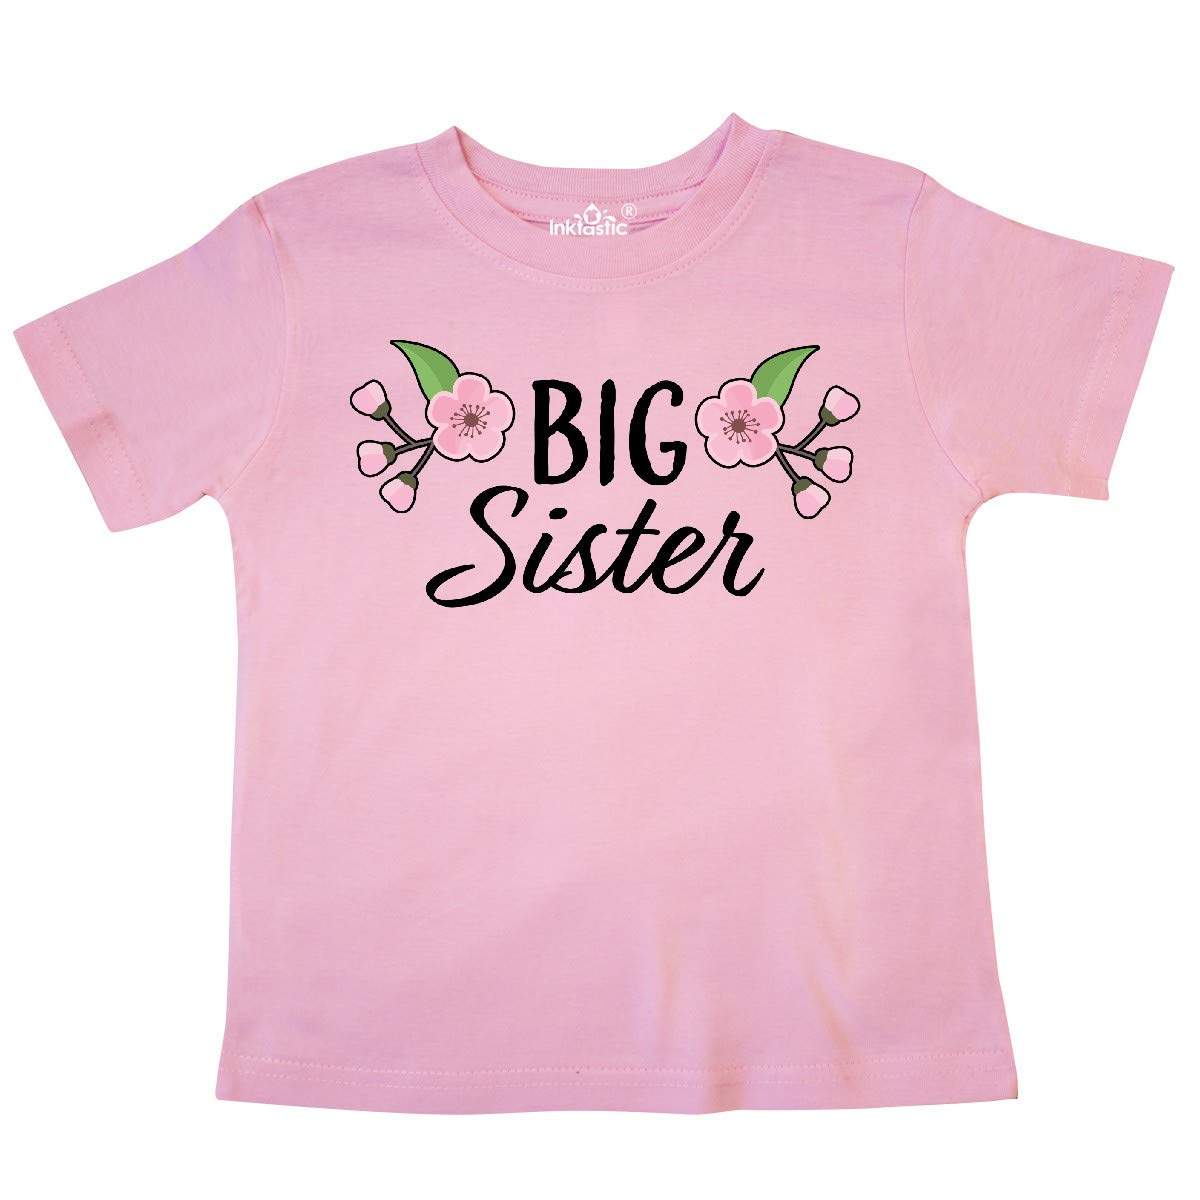 inktastic Big Sister with Cherry Blossom Flowers Toddler T-Shirt